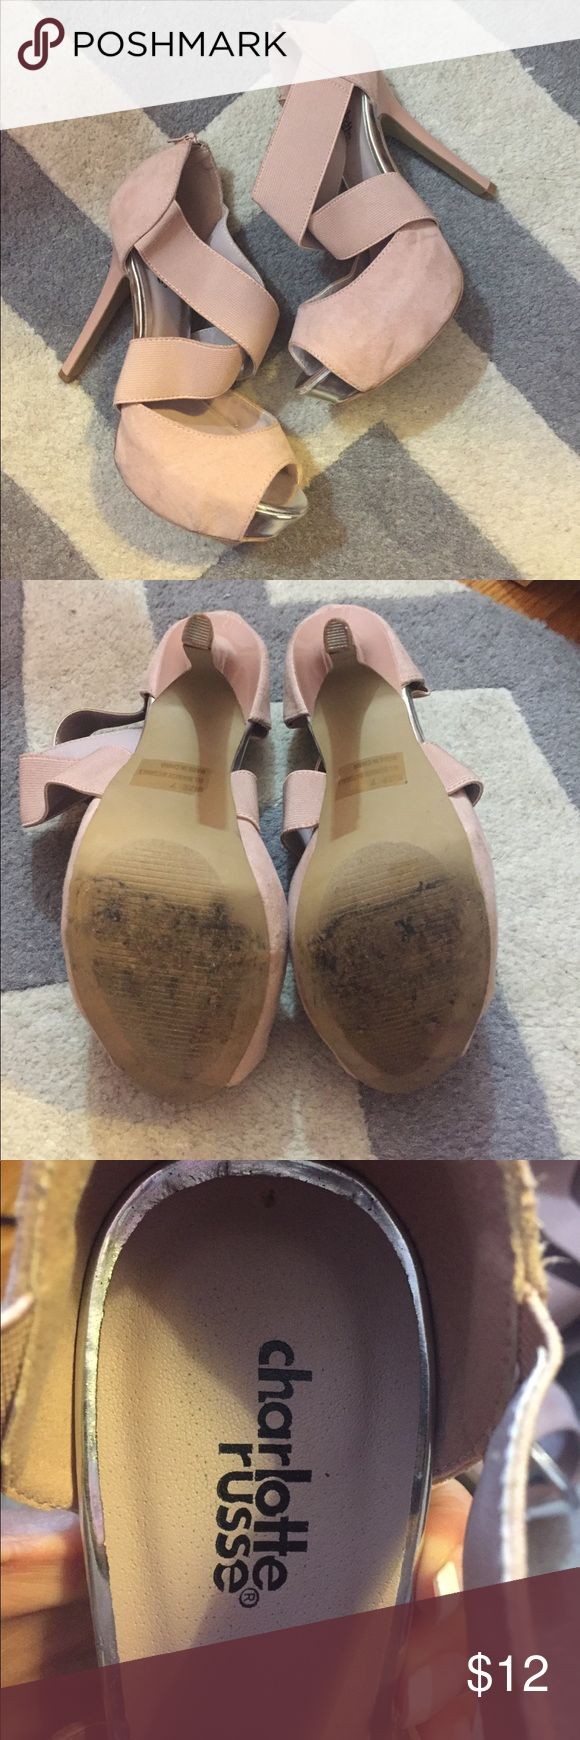 Pale pink Charlotte Russe heels Charlotte Russe heels. Pale pink color. Top and back are suede straps across front are not. Approx. 4 in heel. Worn only a few times still great condition. Charlotte Russe Shoes Heels